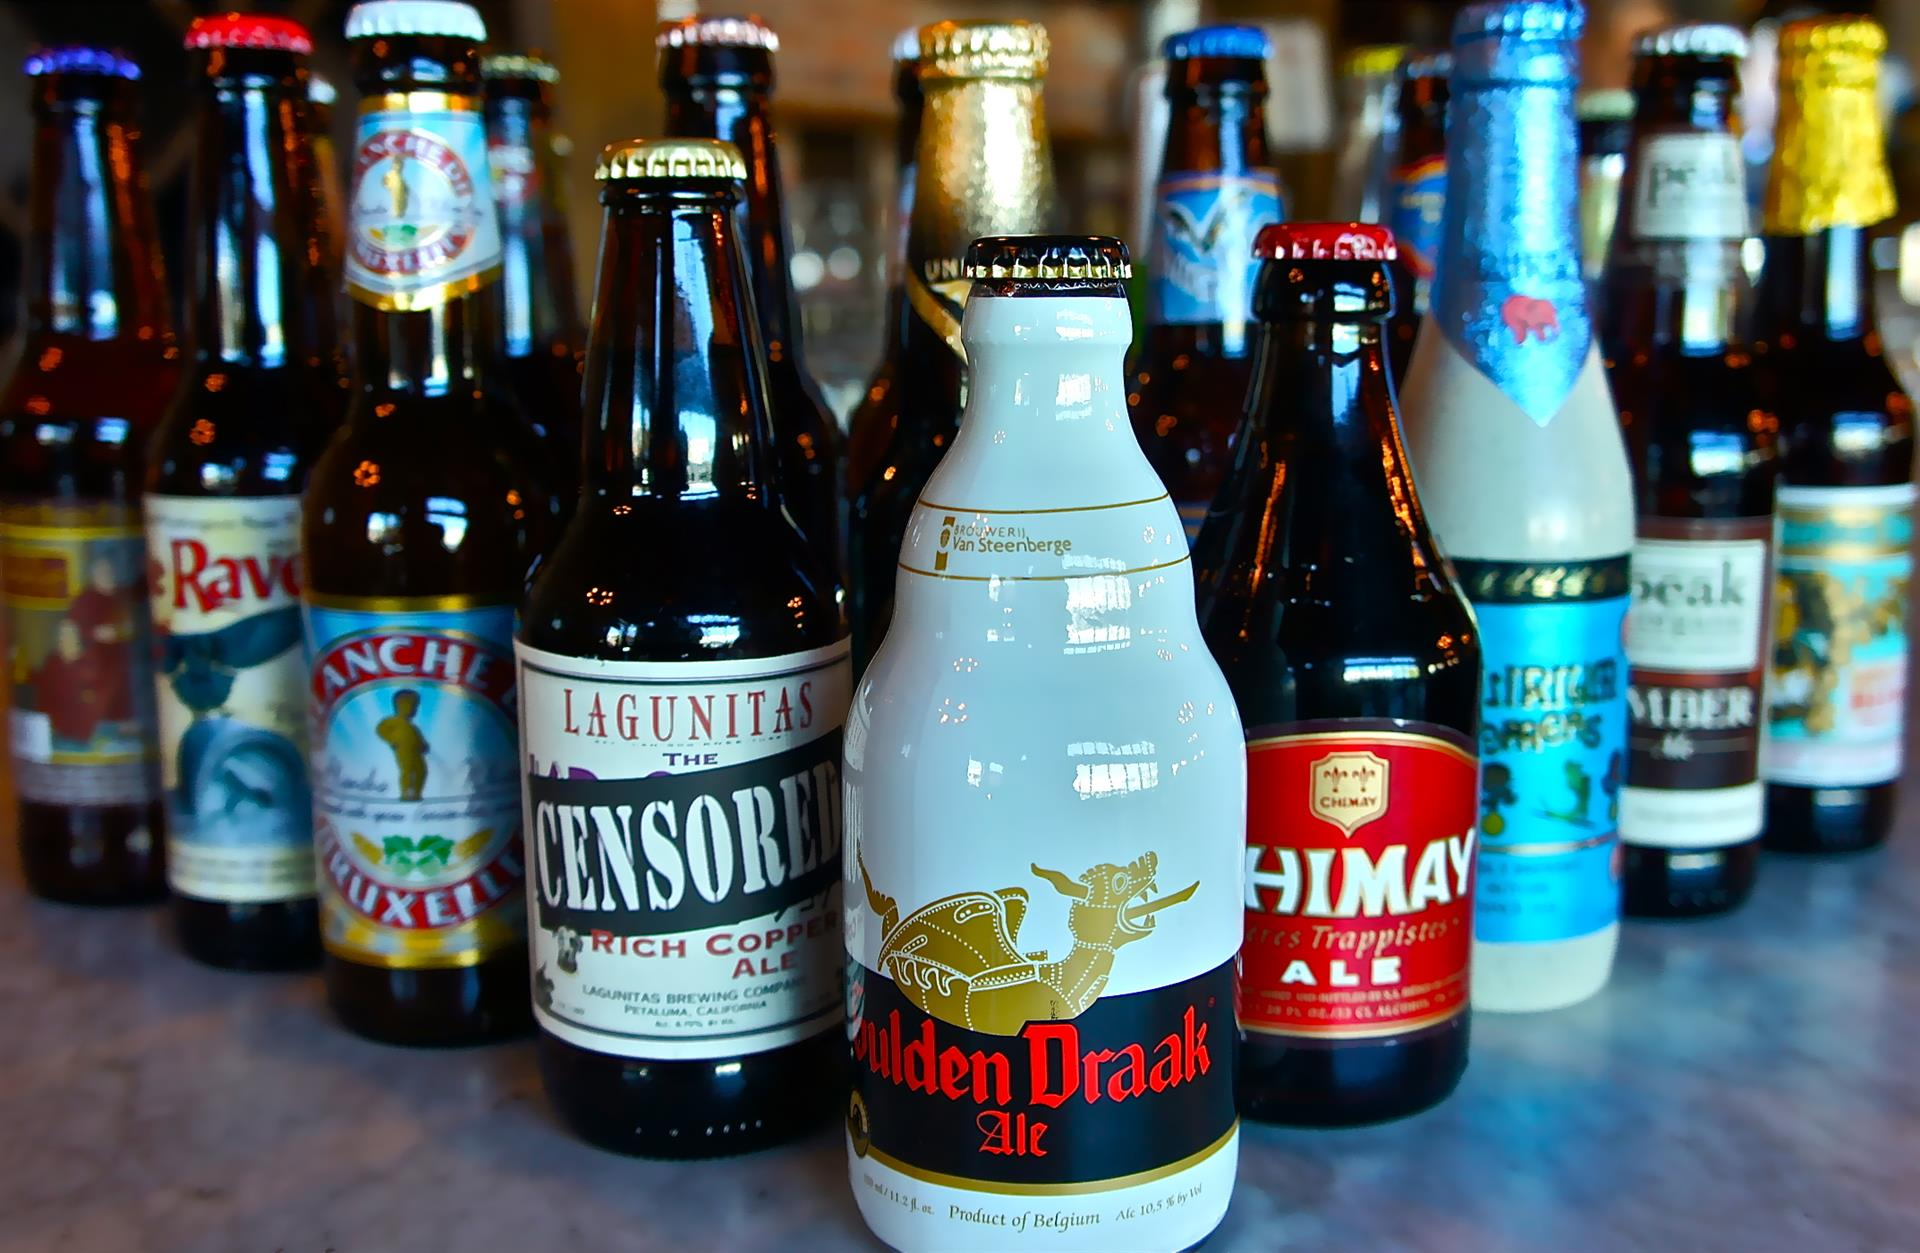 a wide variety of different bottled alcoholic beverages